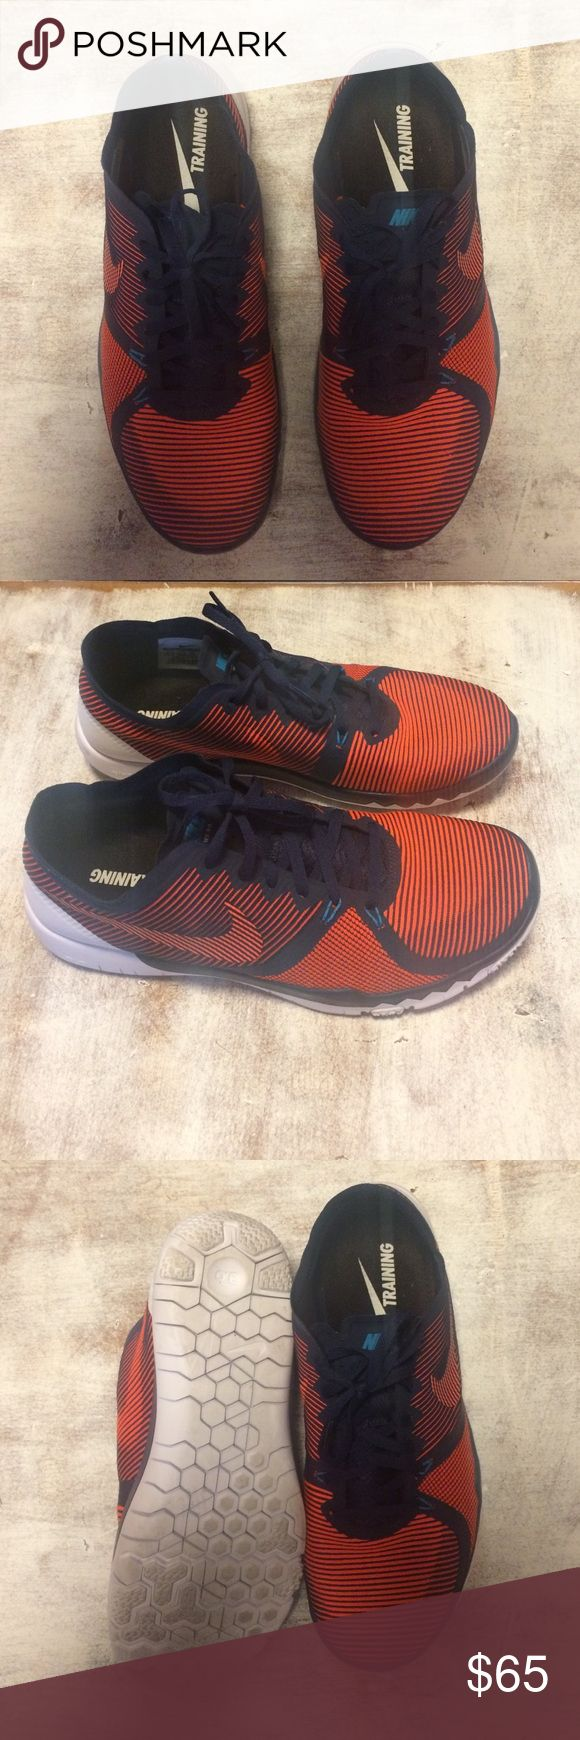 Nike Free 3.0 V4 training shoes Orange and navy striped Nike frees. Worn only twice! Size 9.5 fits true to size Nike Shoes Athletic Shoes